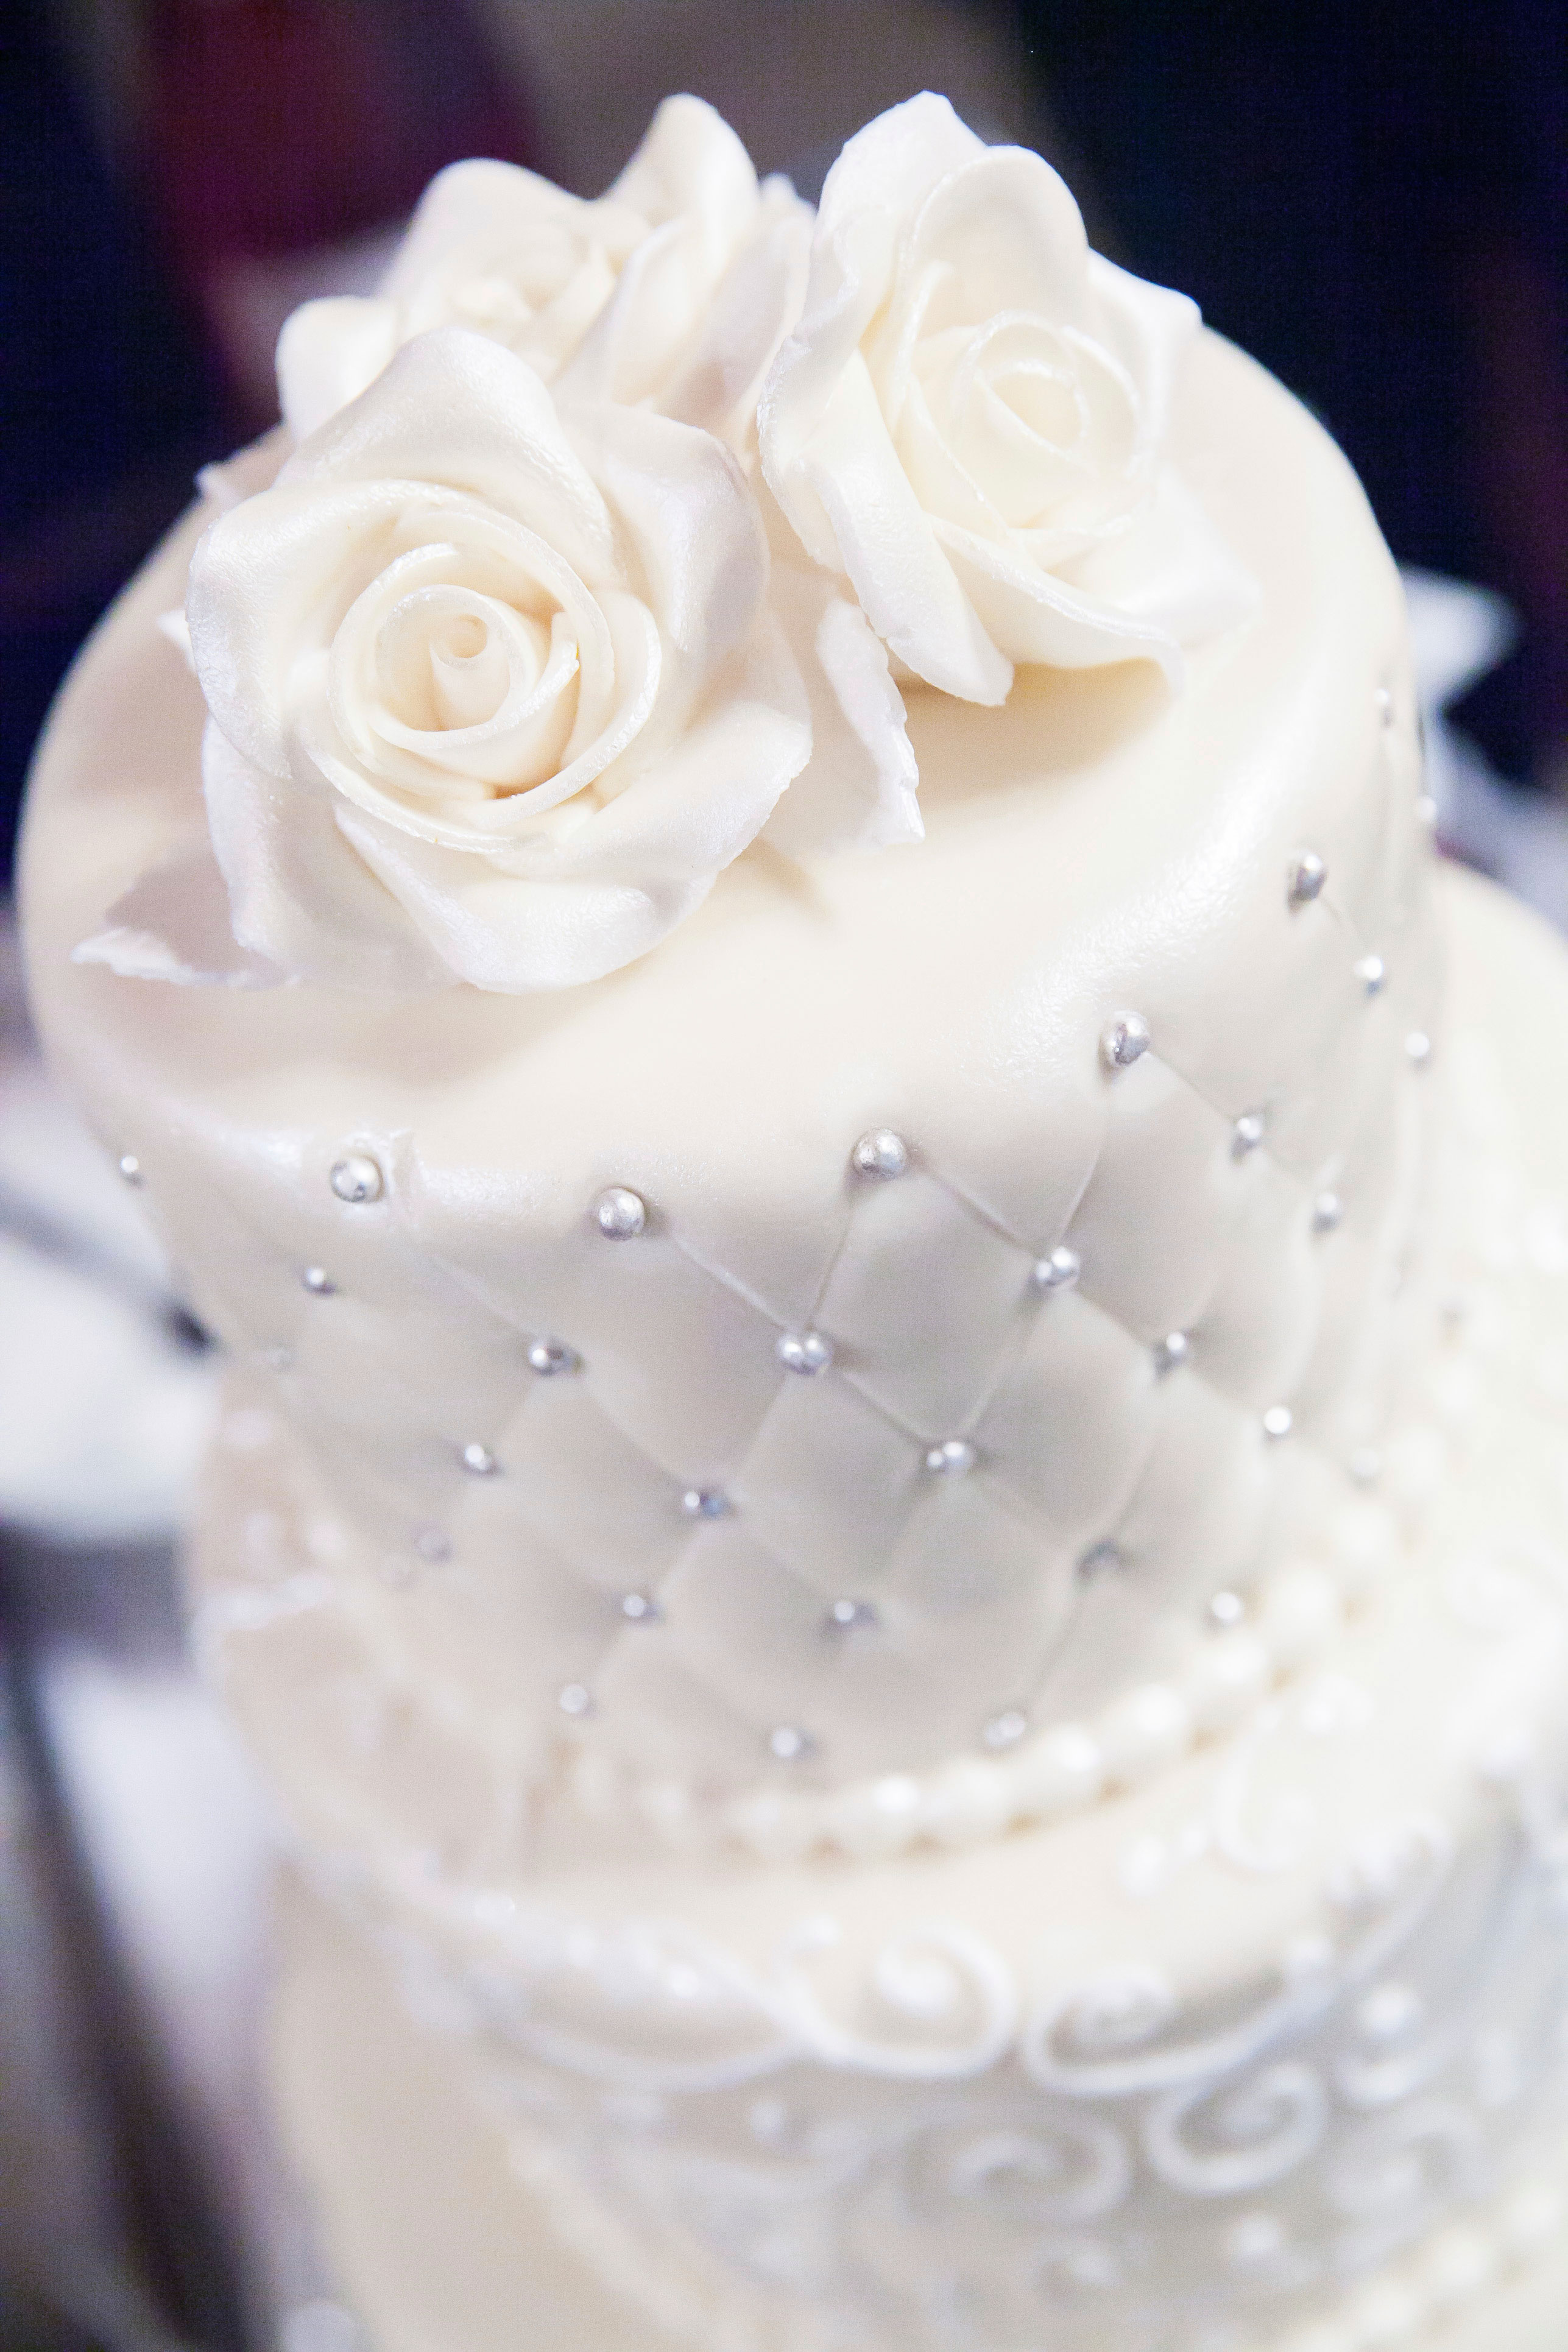 How To Freeze The Top Layer Of Your Wedding Cake - 5000+ Simple ...